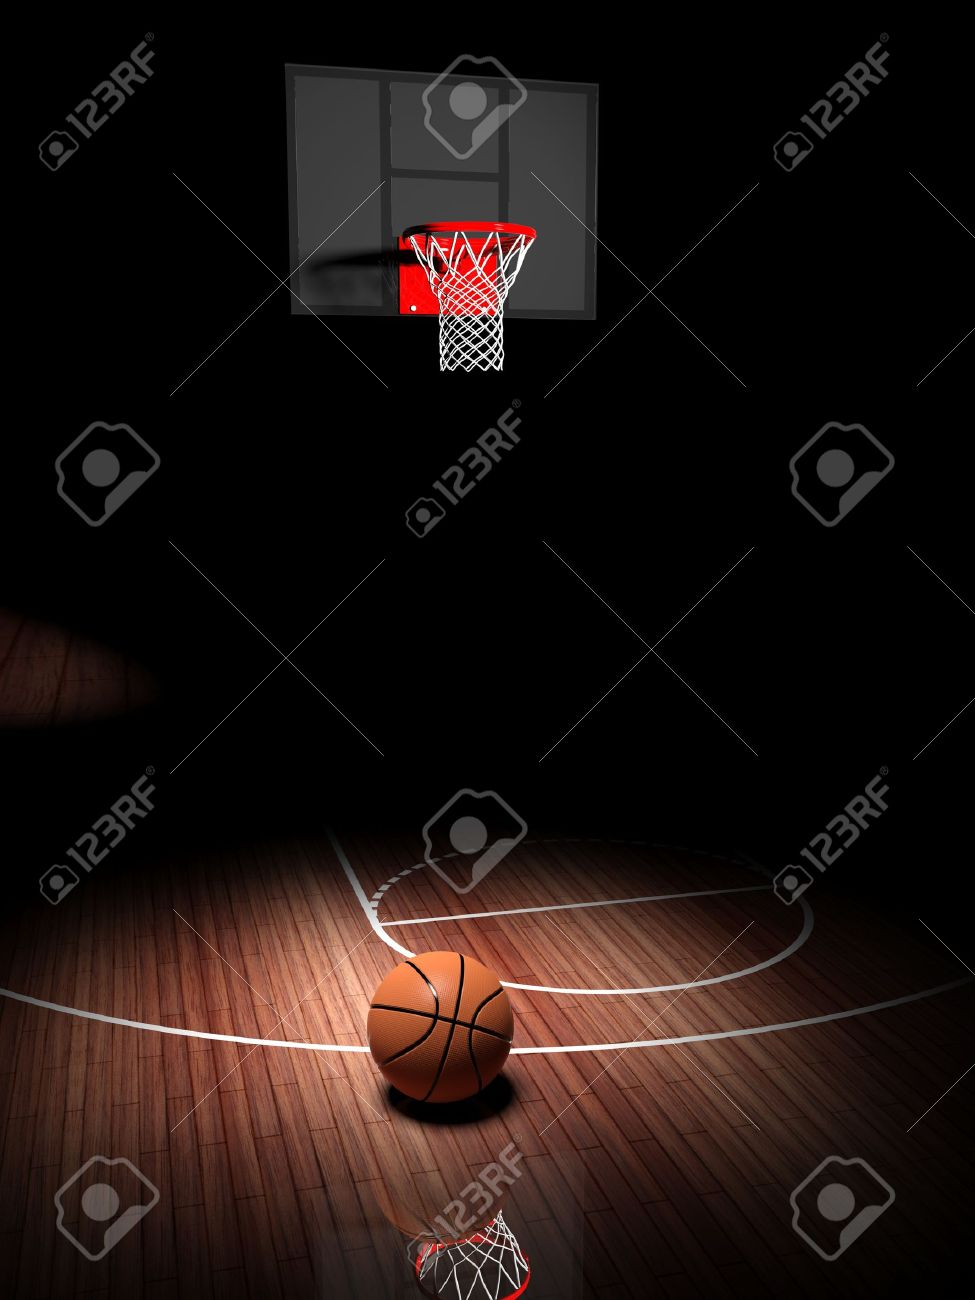 Basketball hoop with ball on wooden court floor Stock Photo - 30087527